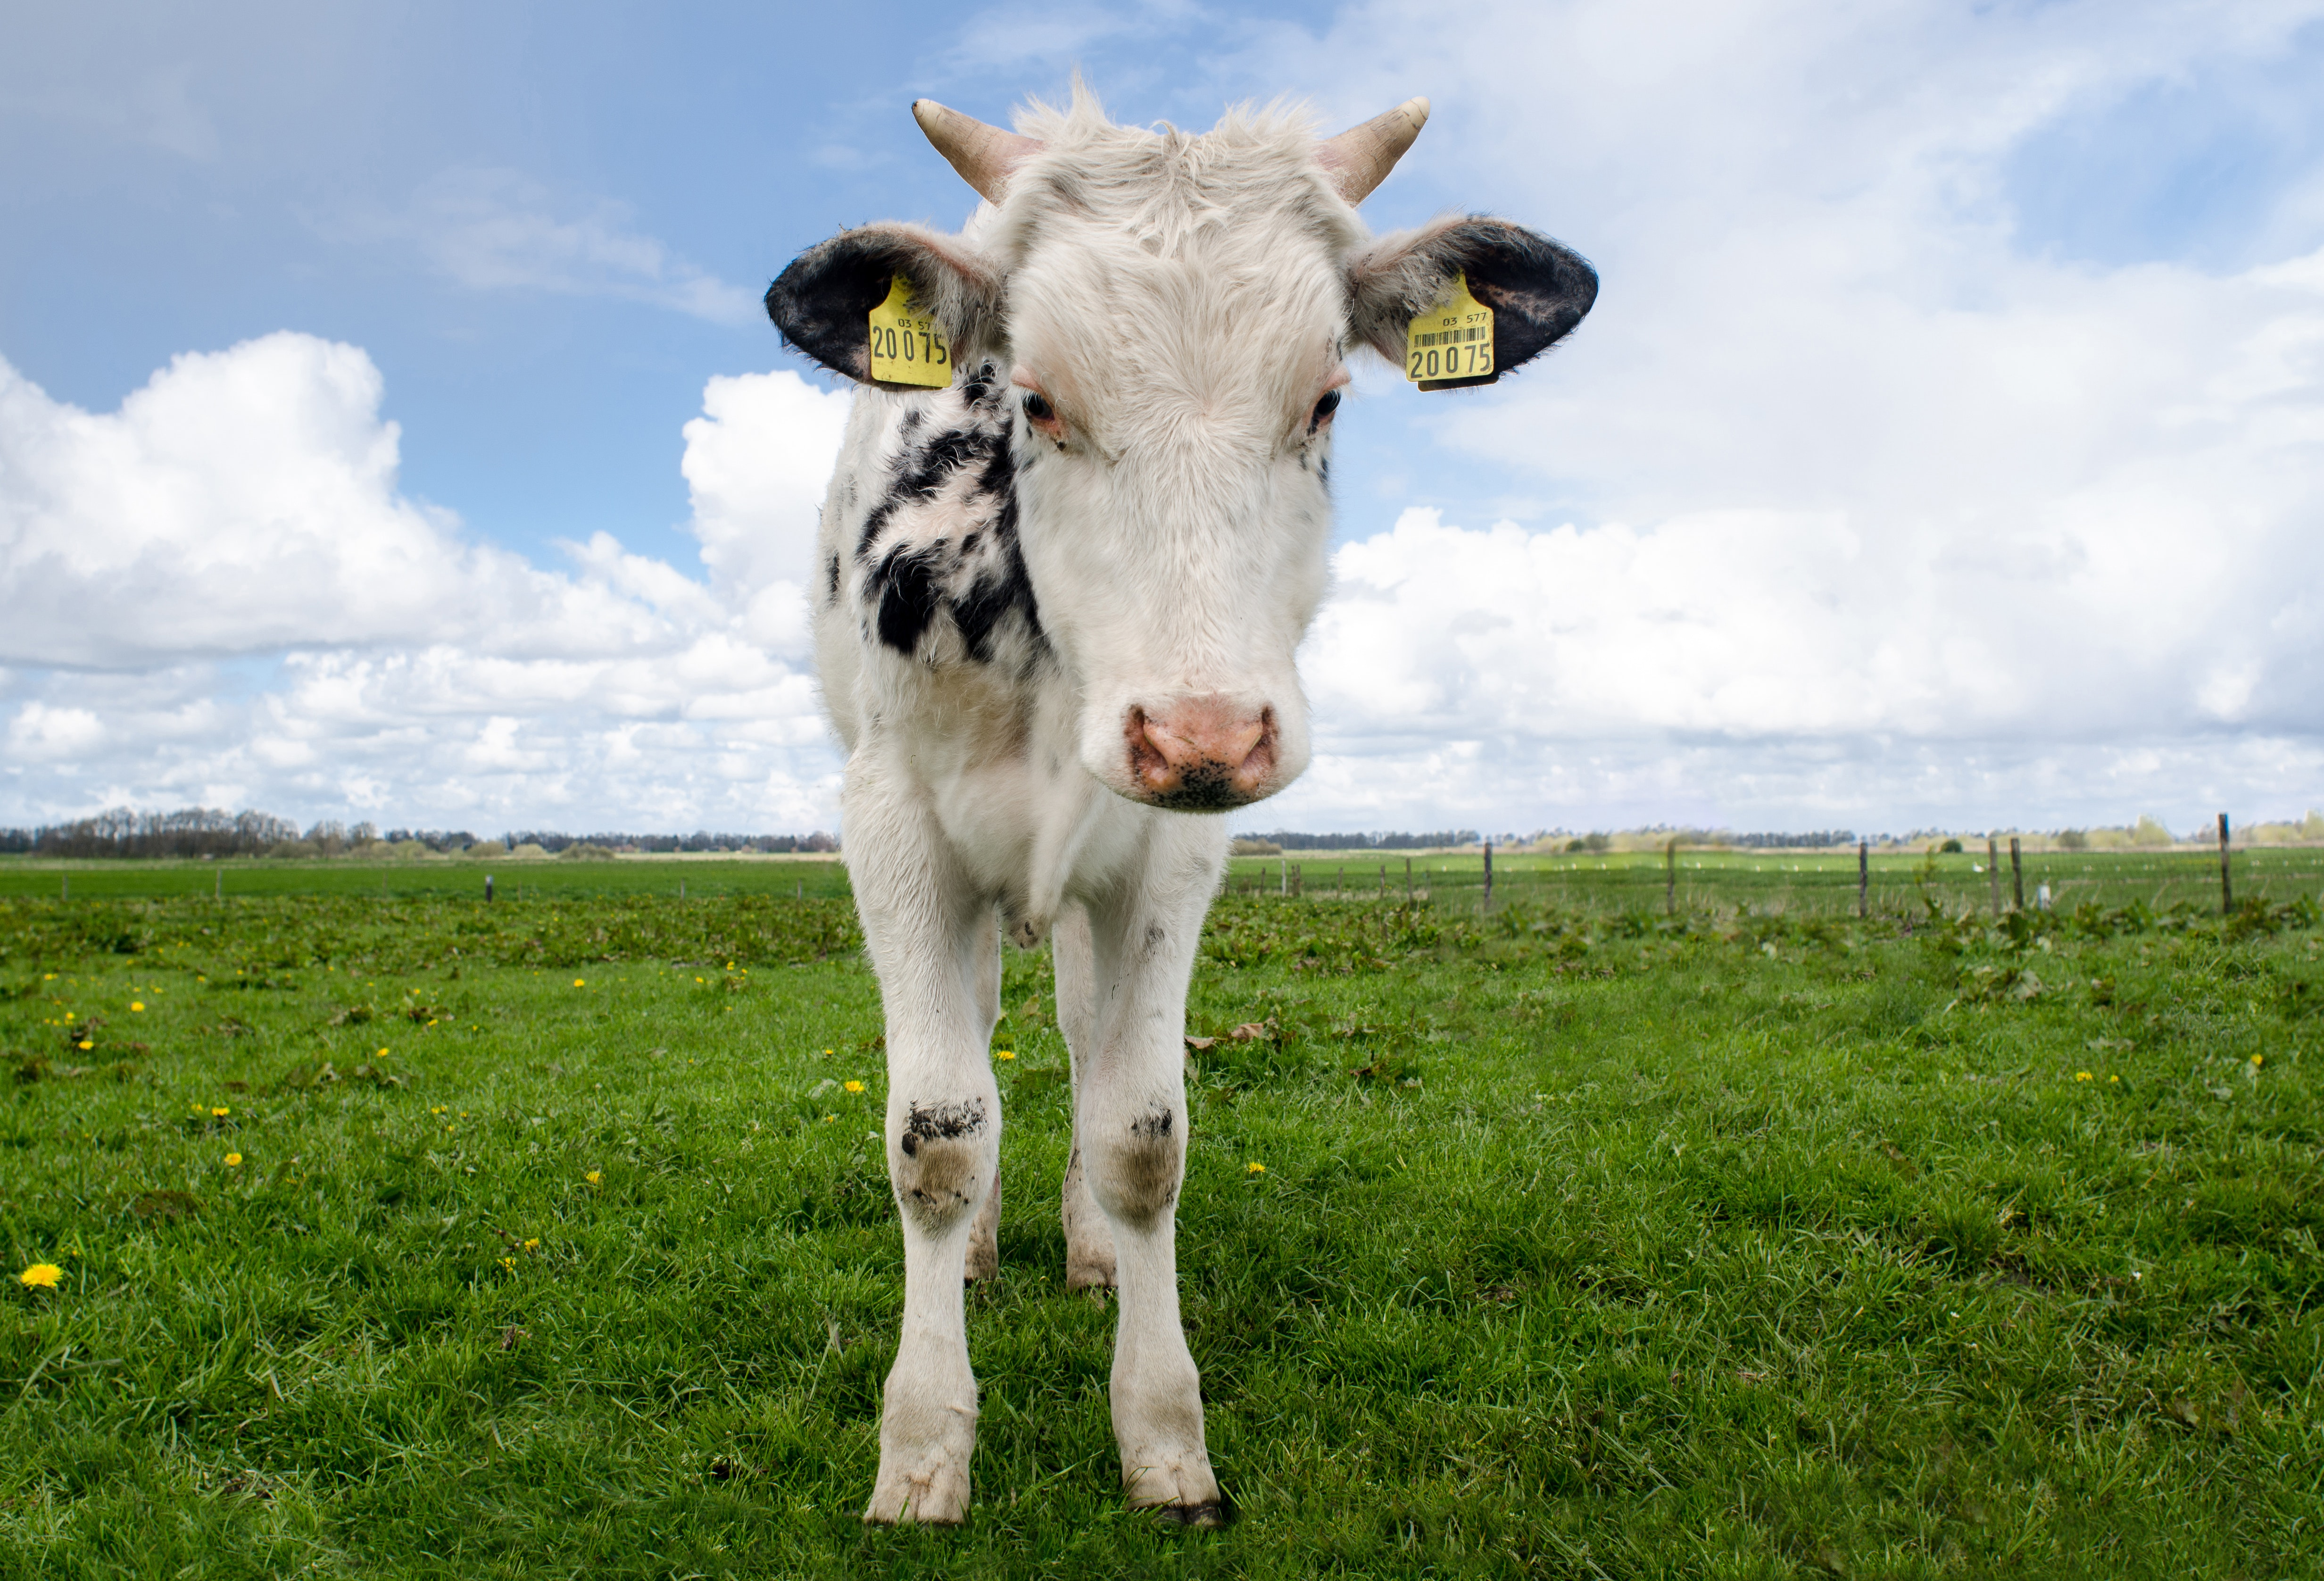 White and black cow during daytime photo